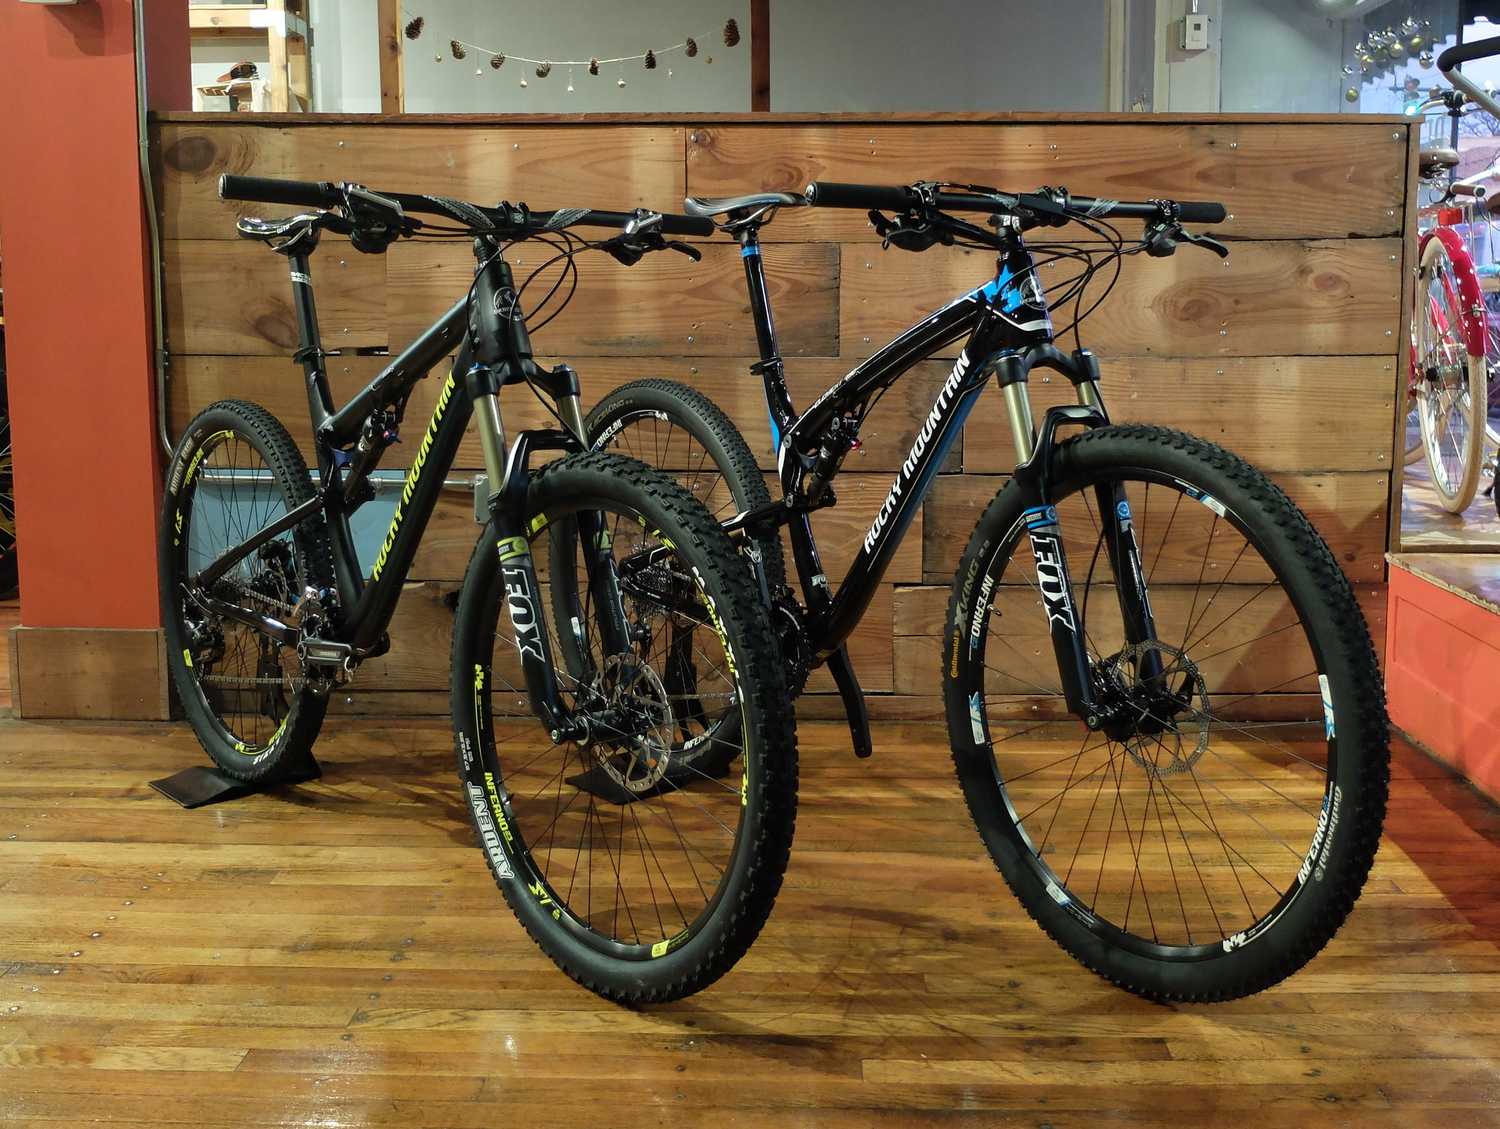 The Rocky Mountain Thunderbolt (L) and iconic Element (R).